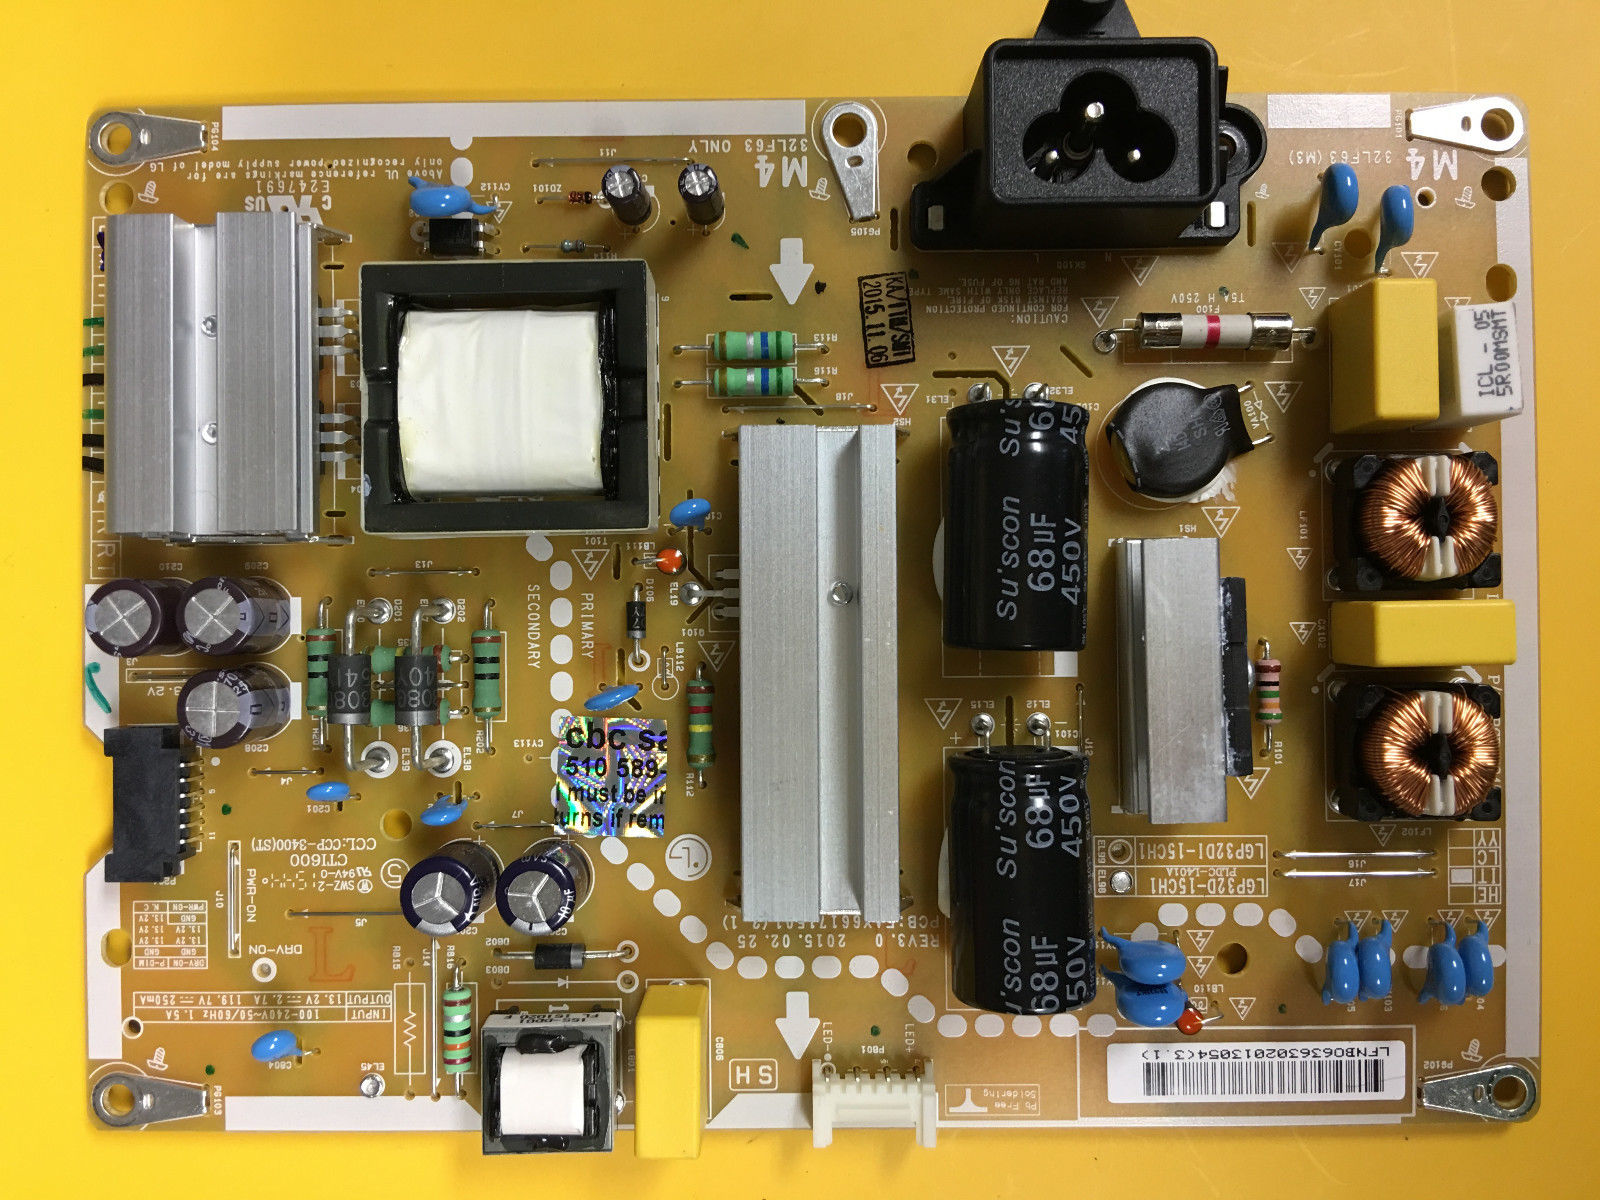 LG 32LF5600-UB TV LGP32D-15CH1 EAX66171501(2.1) POWER SUPPLY BOARD